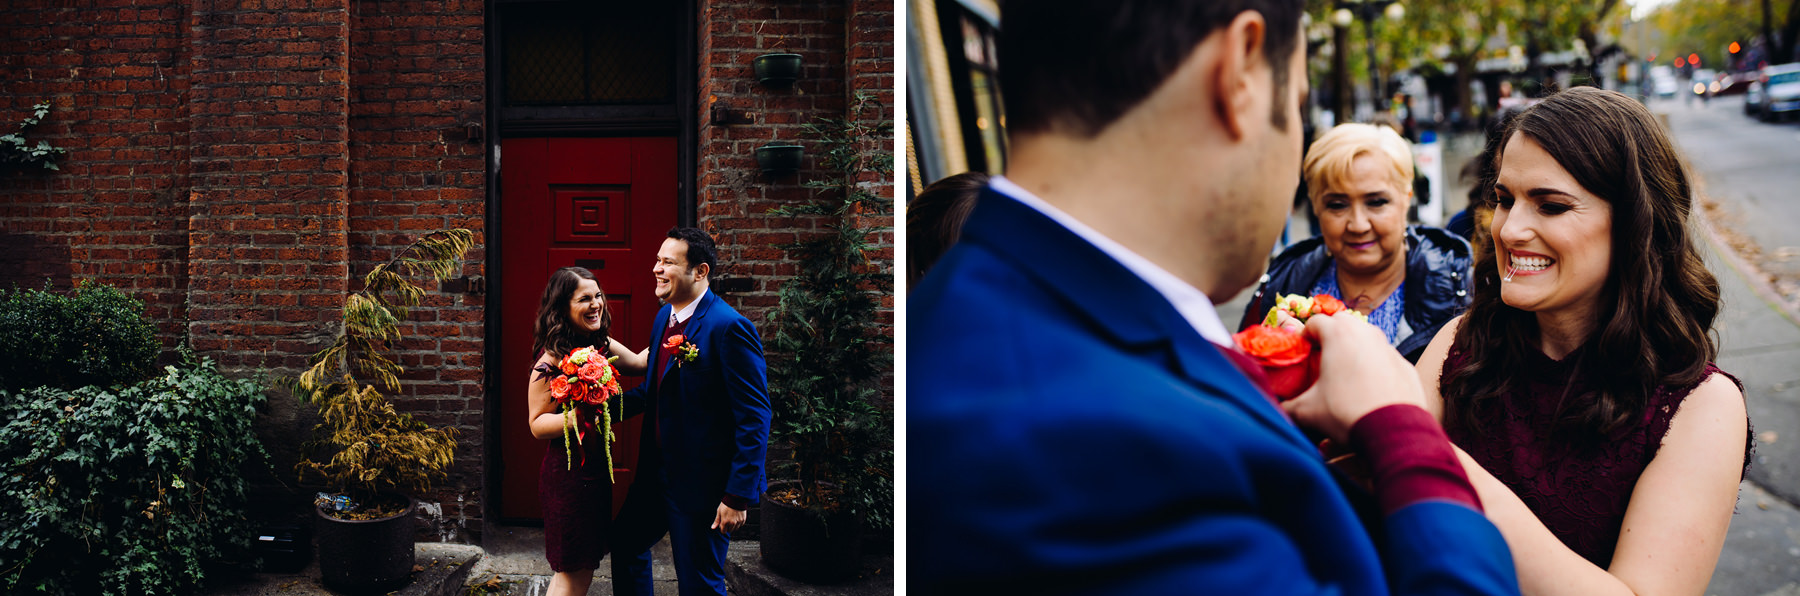 seattle alley way wedding photos